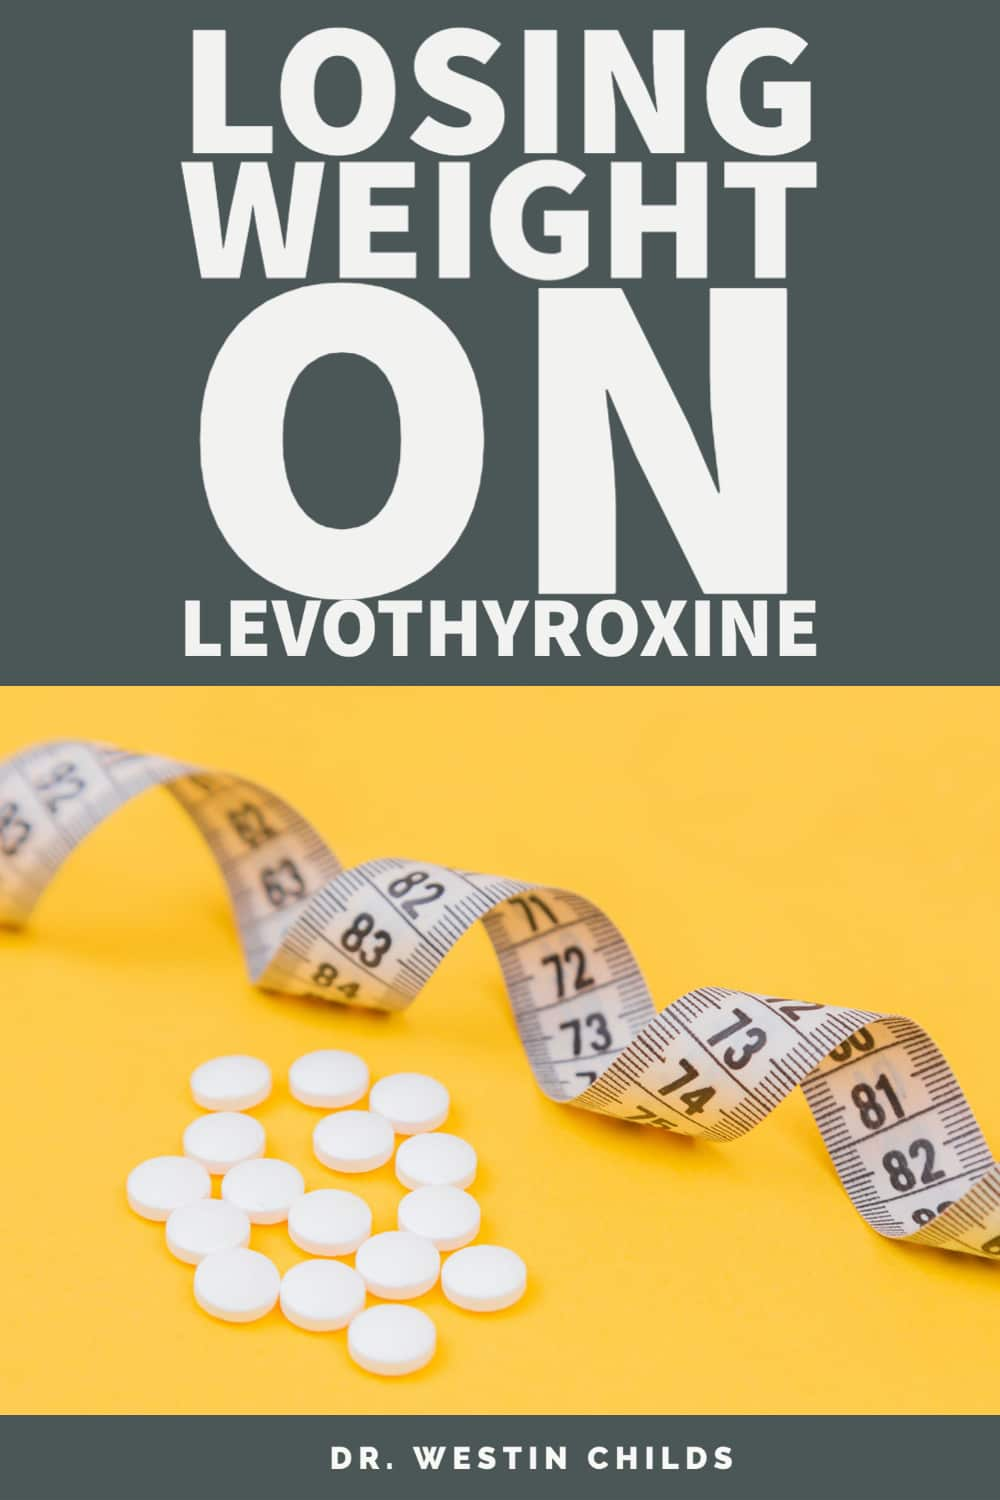 how to lose weight on levothyroxine